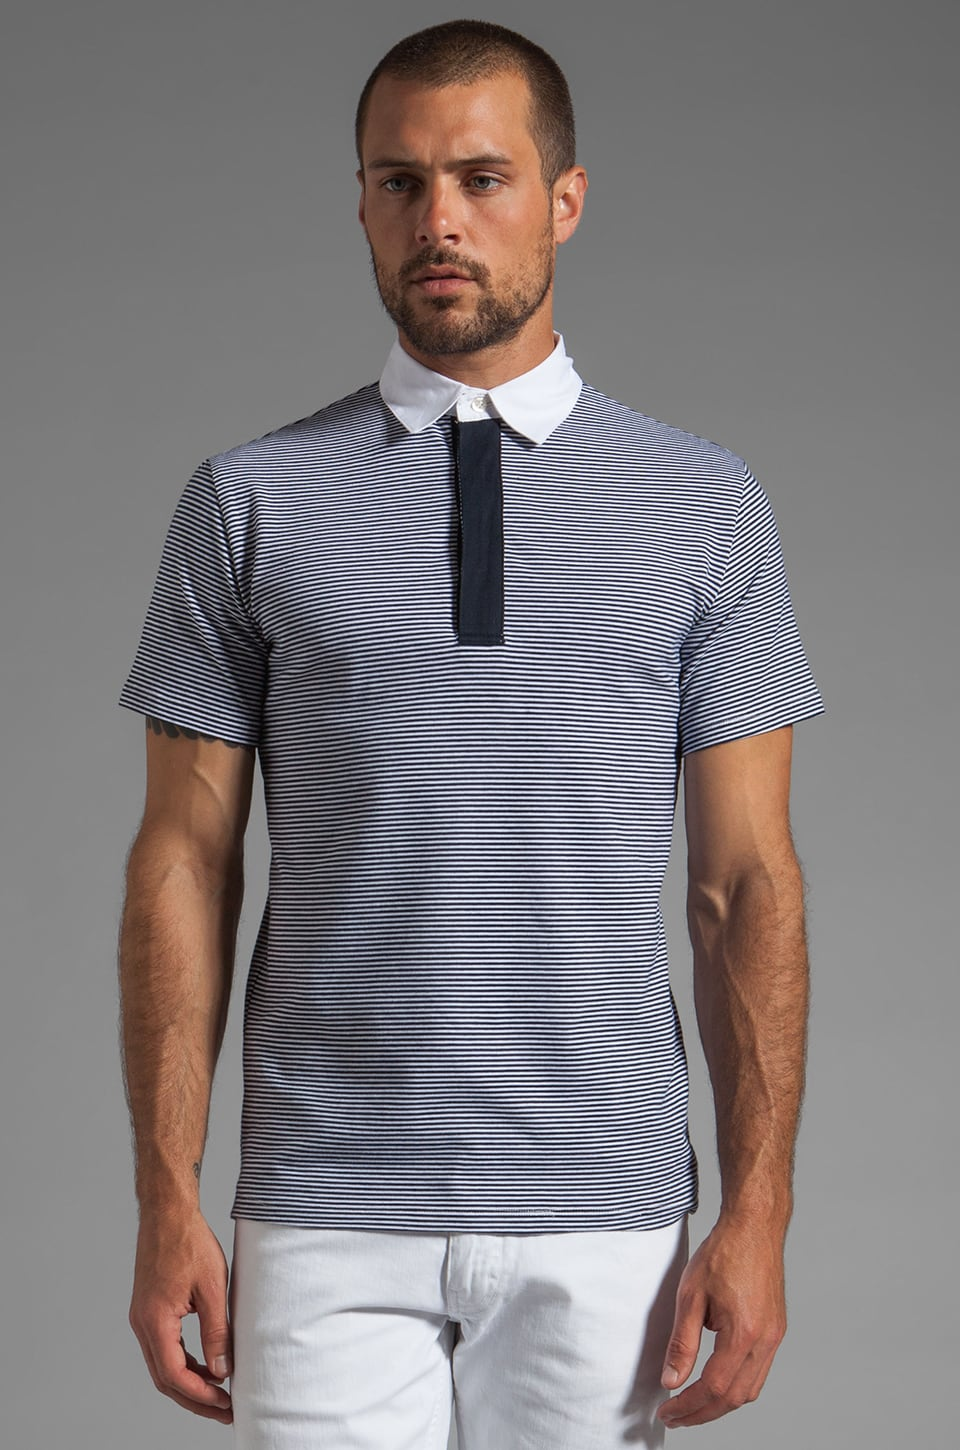 Shades of Grey by Micah Cohen S/S Polo Shirt in Thin Navy Stripe